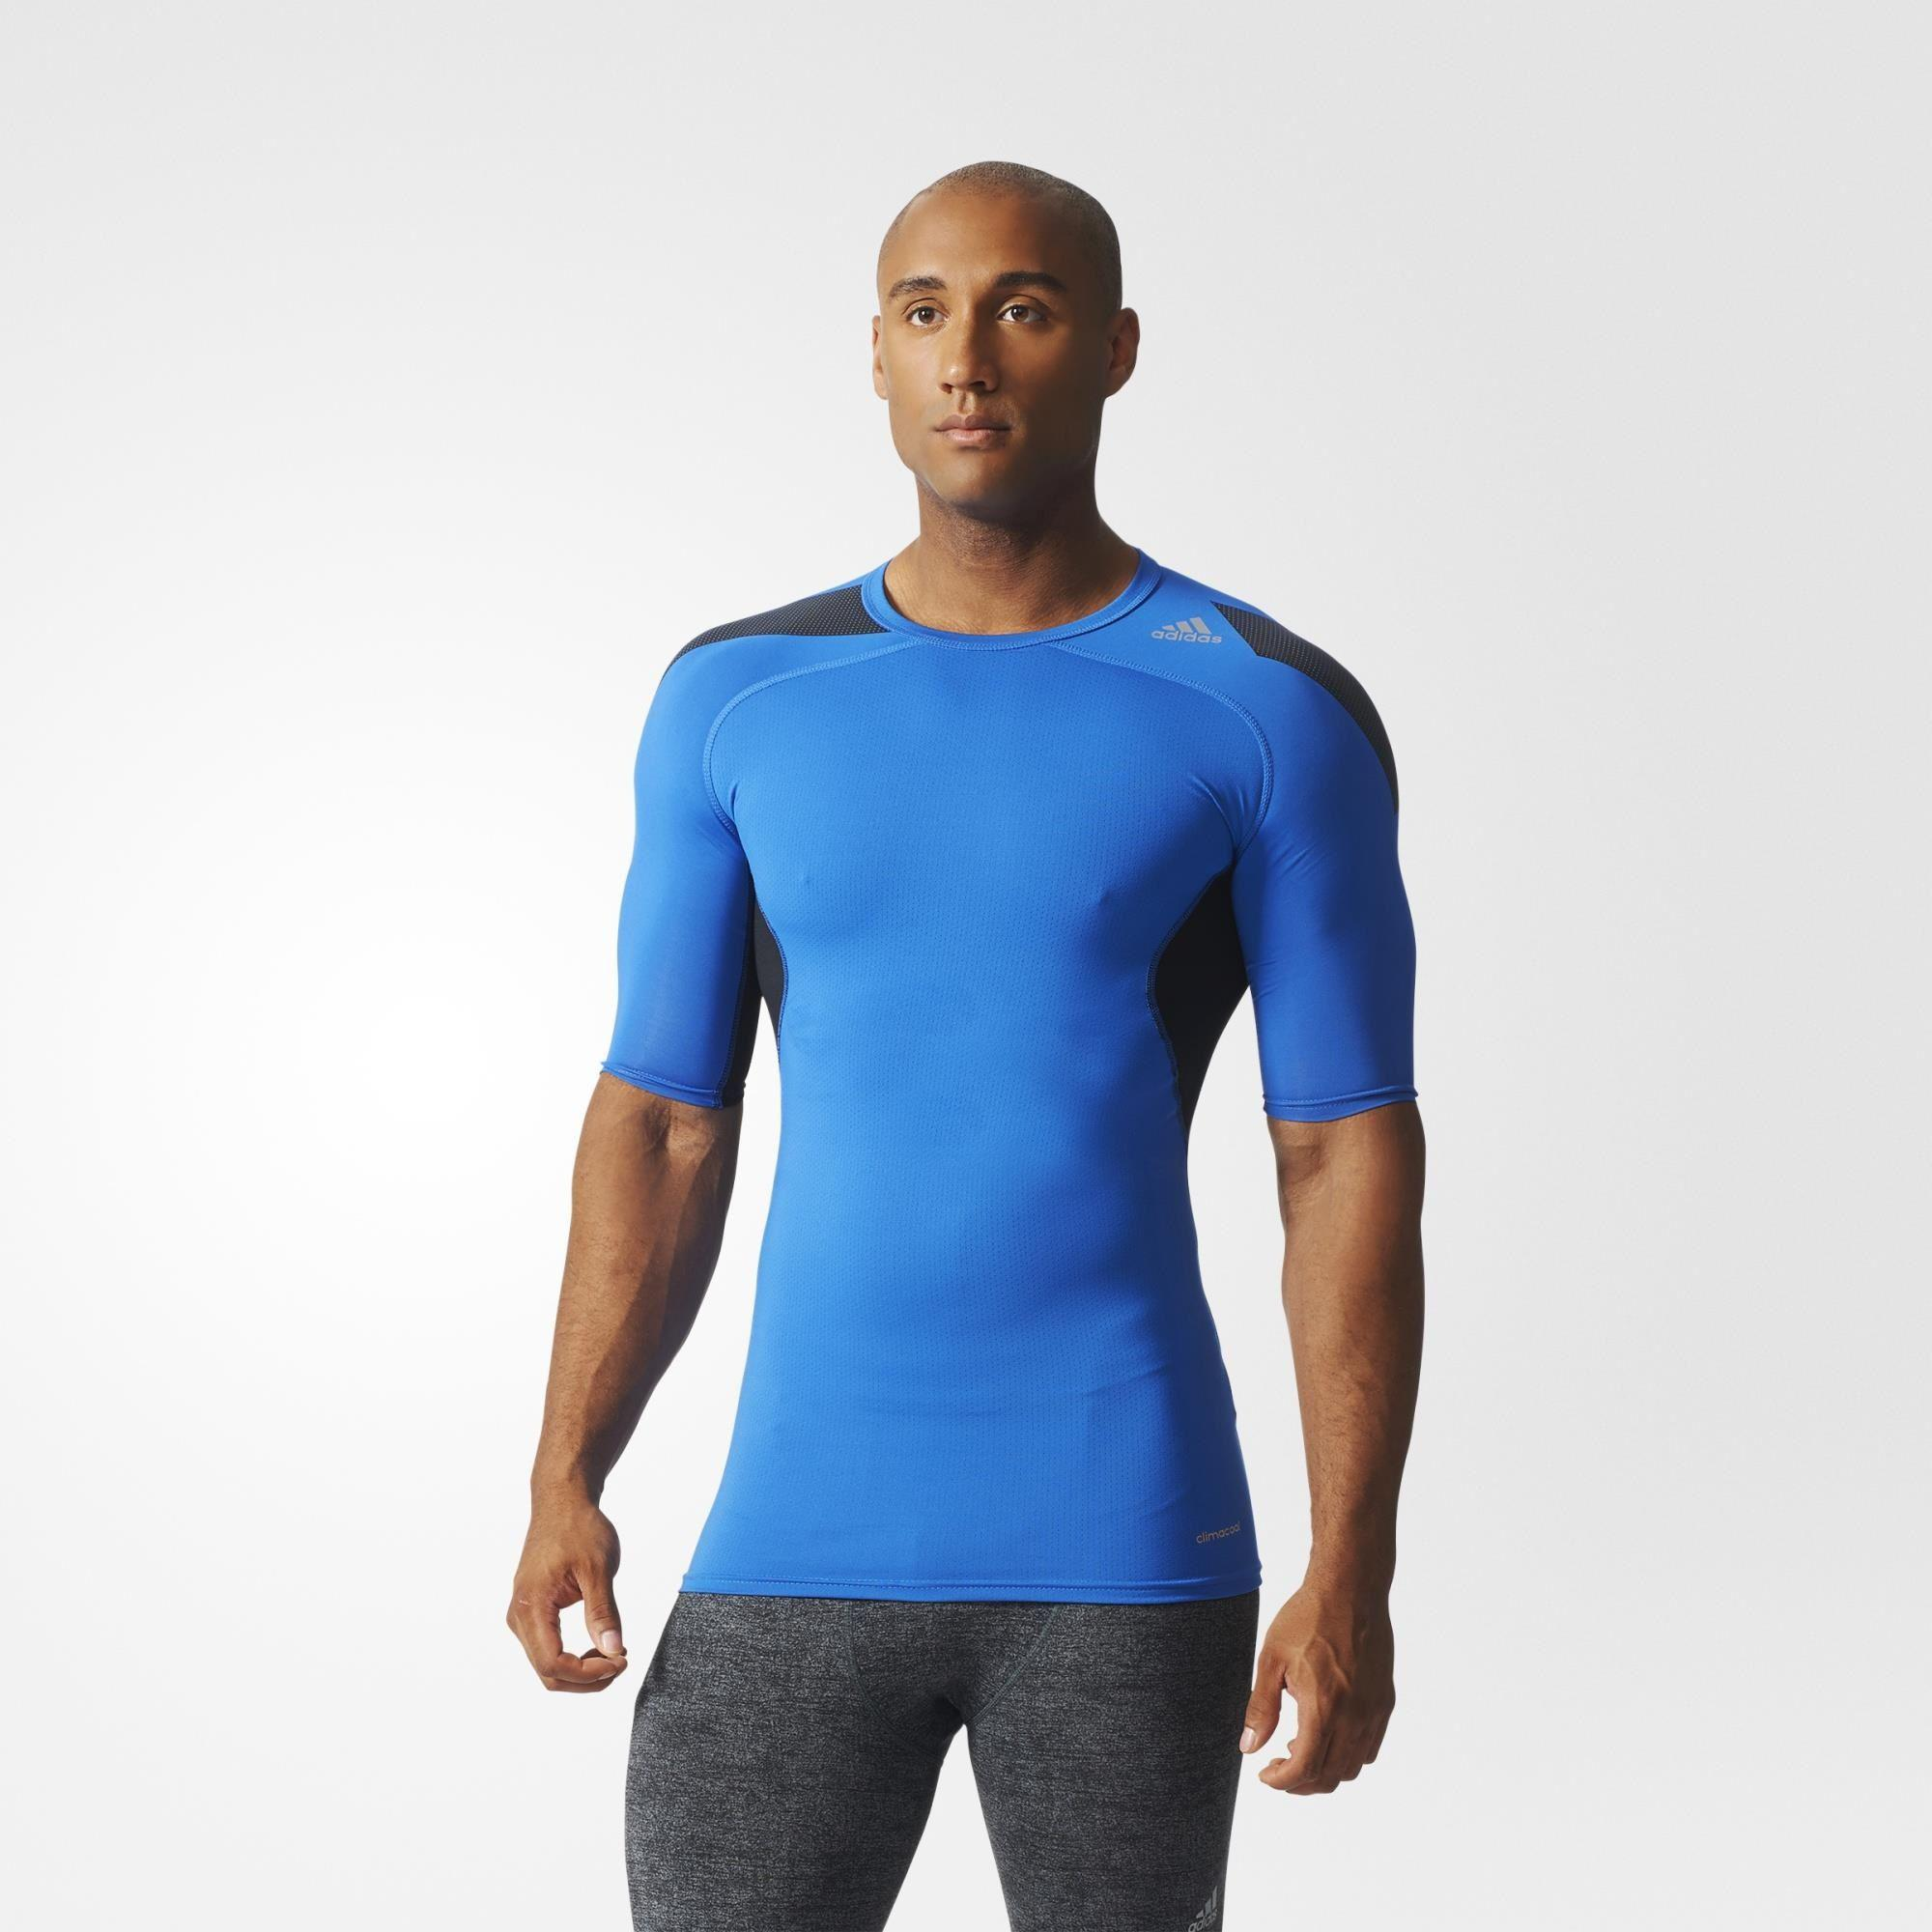 Adidas Mens Techfit Cool Short Sleeve Top - Blue/Black ...